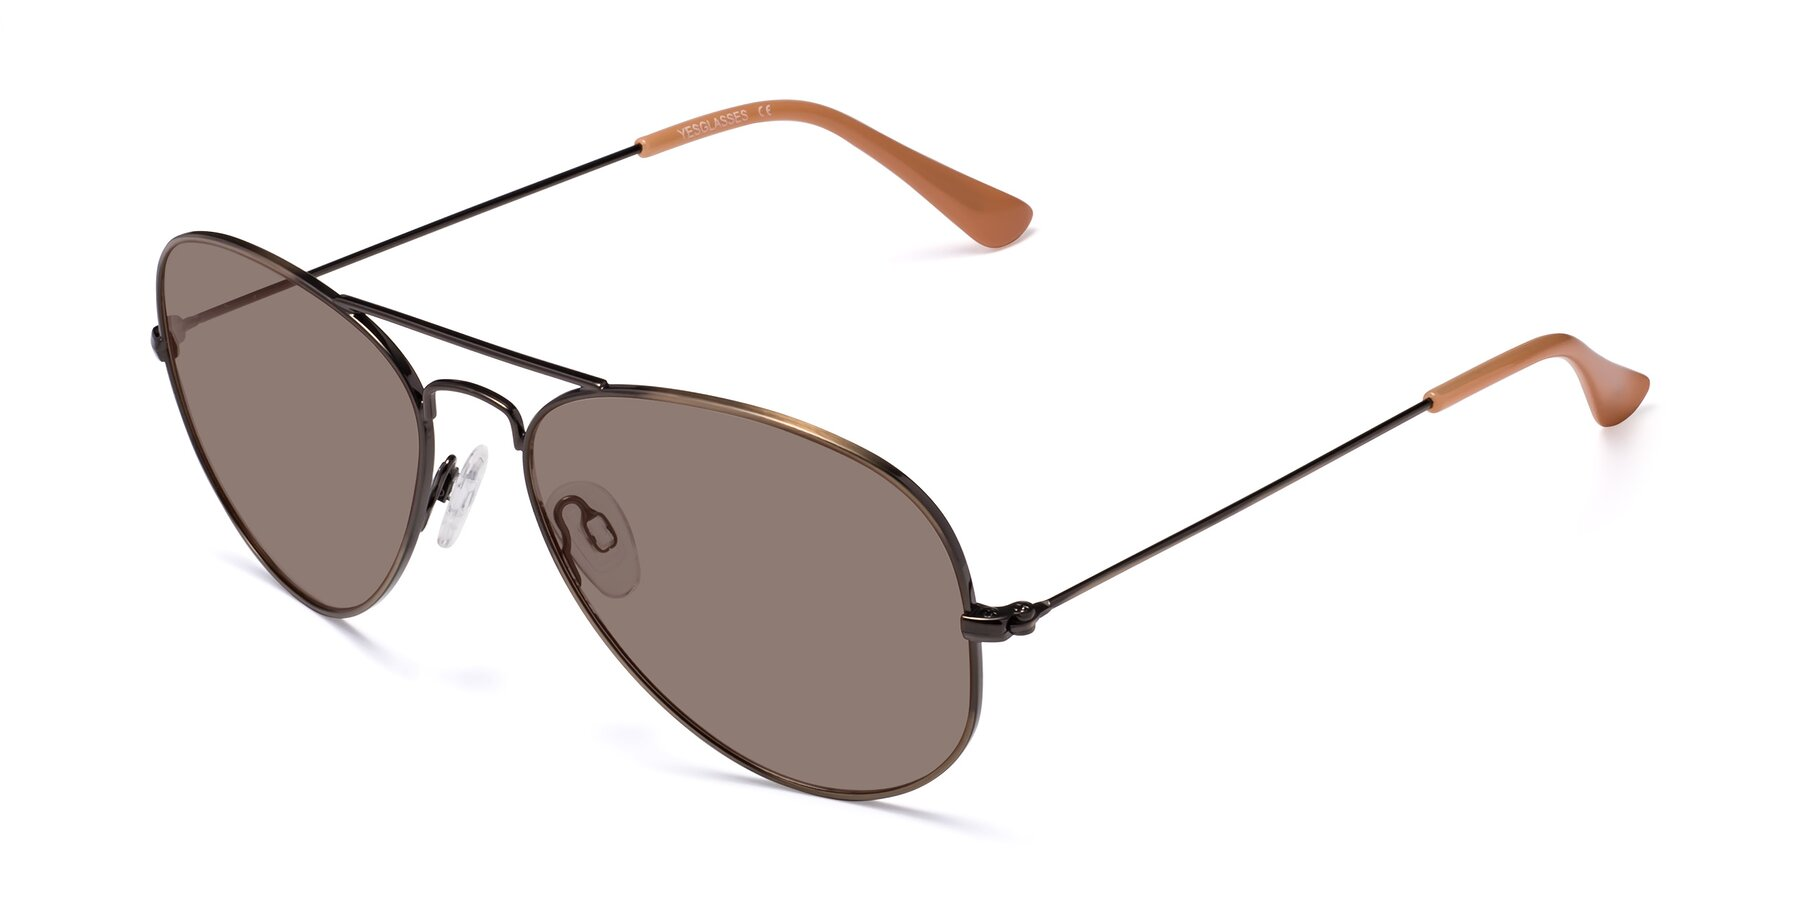 Angle of Yesterday in Antique Bronze with Medium Brown Tinted Lenses